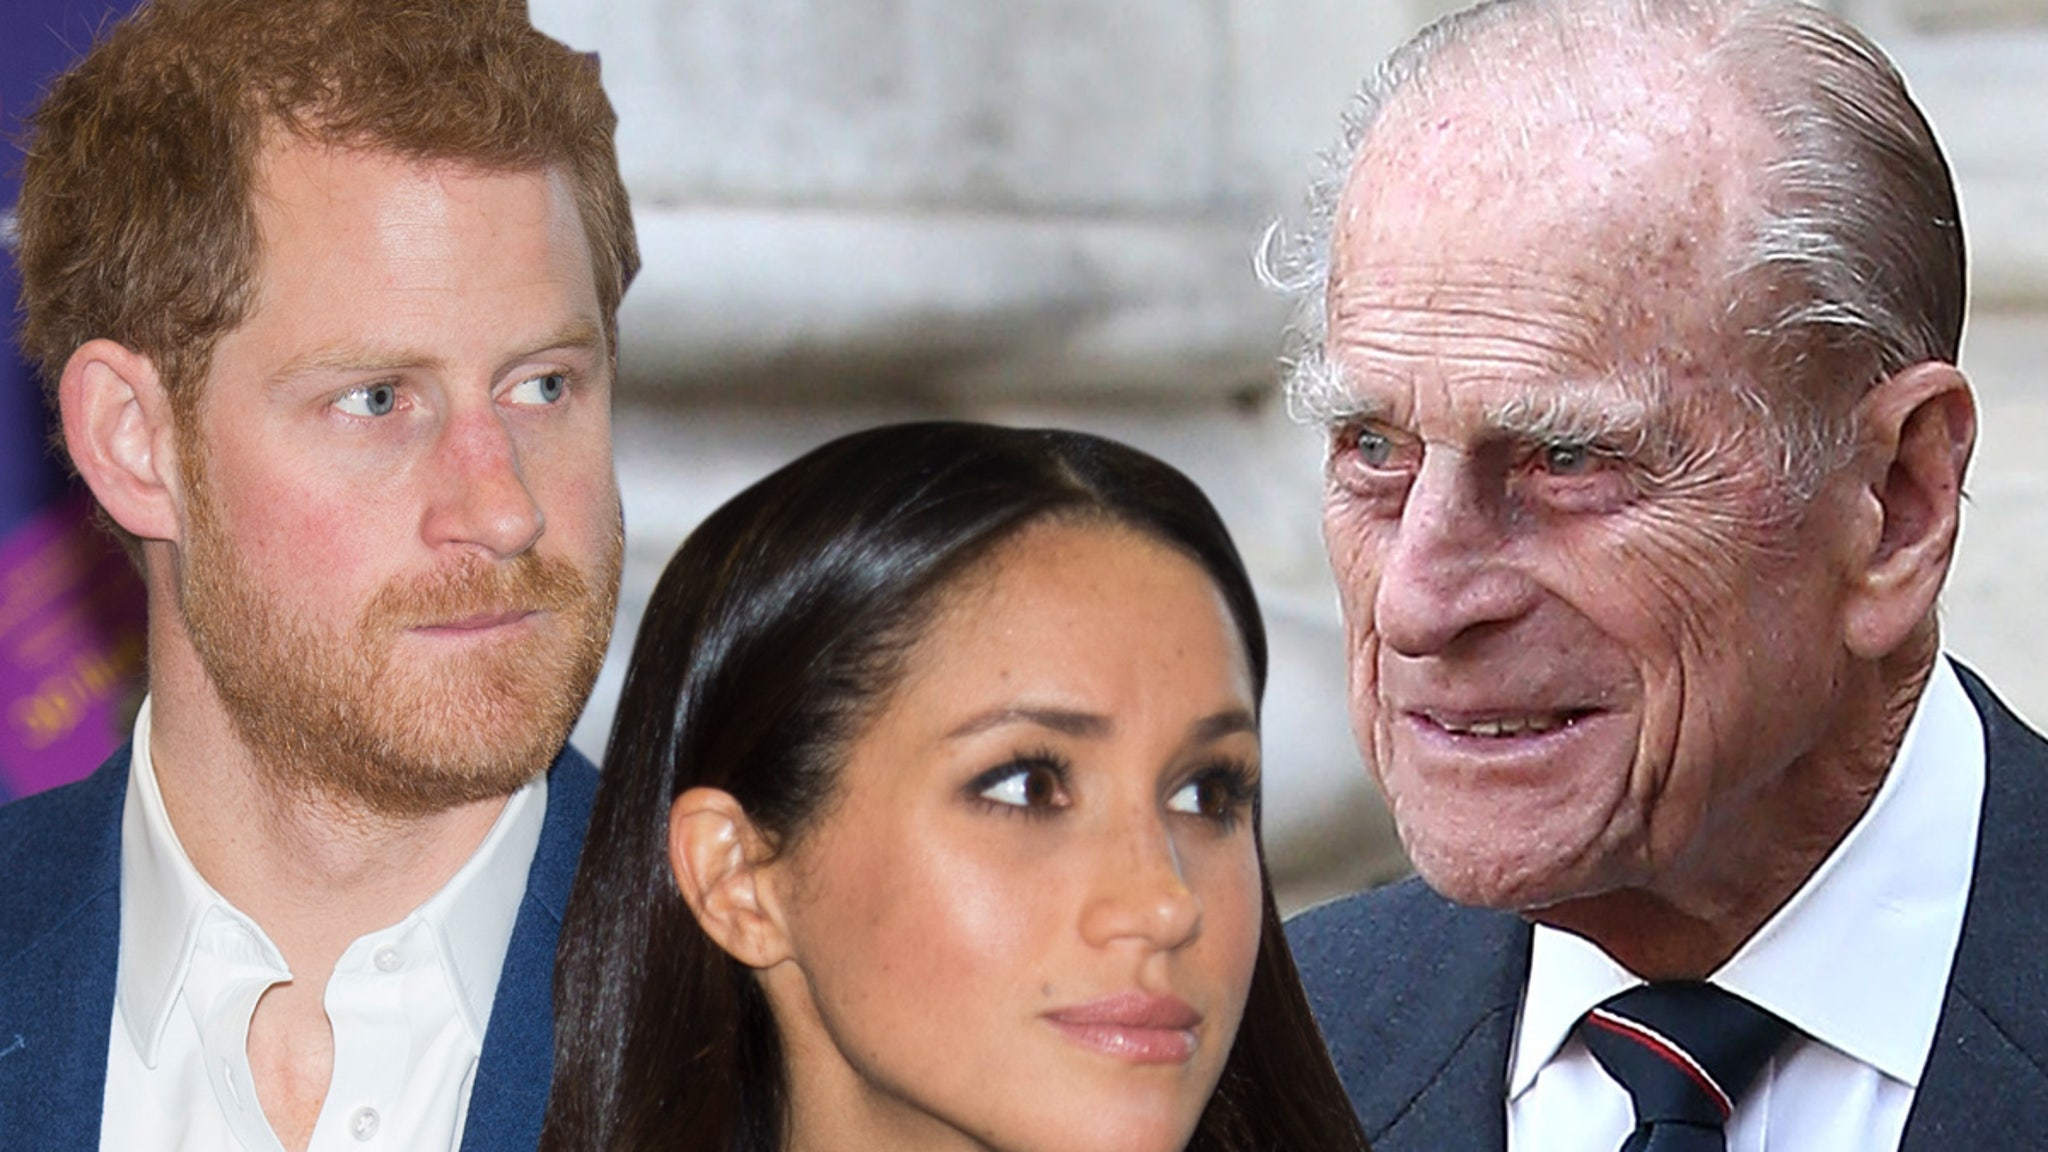 Prince Harry & Meghan Markle Post Tribute to Prince Philip, Obama Too thumbnail